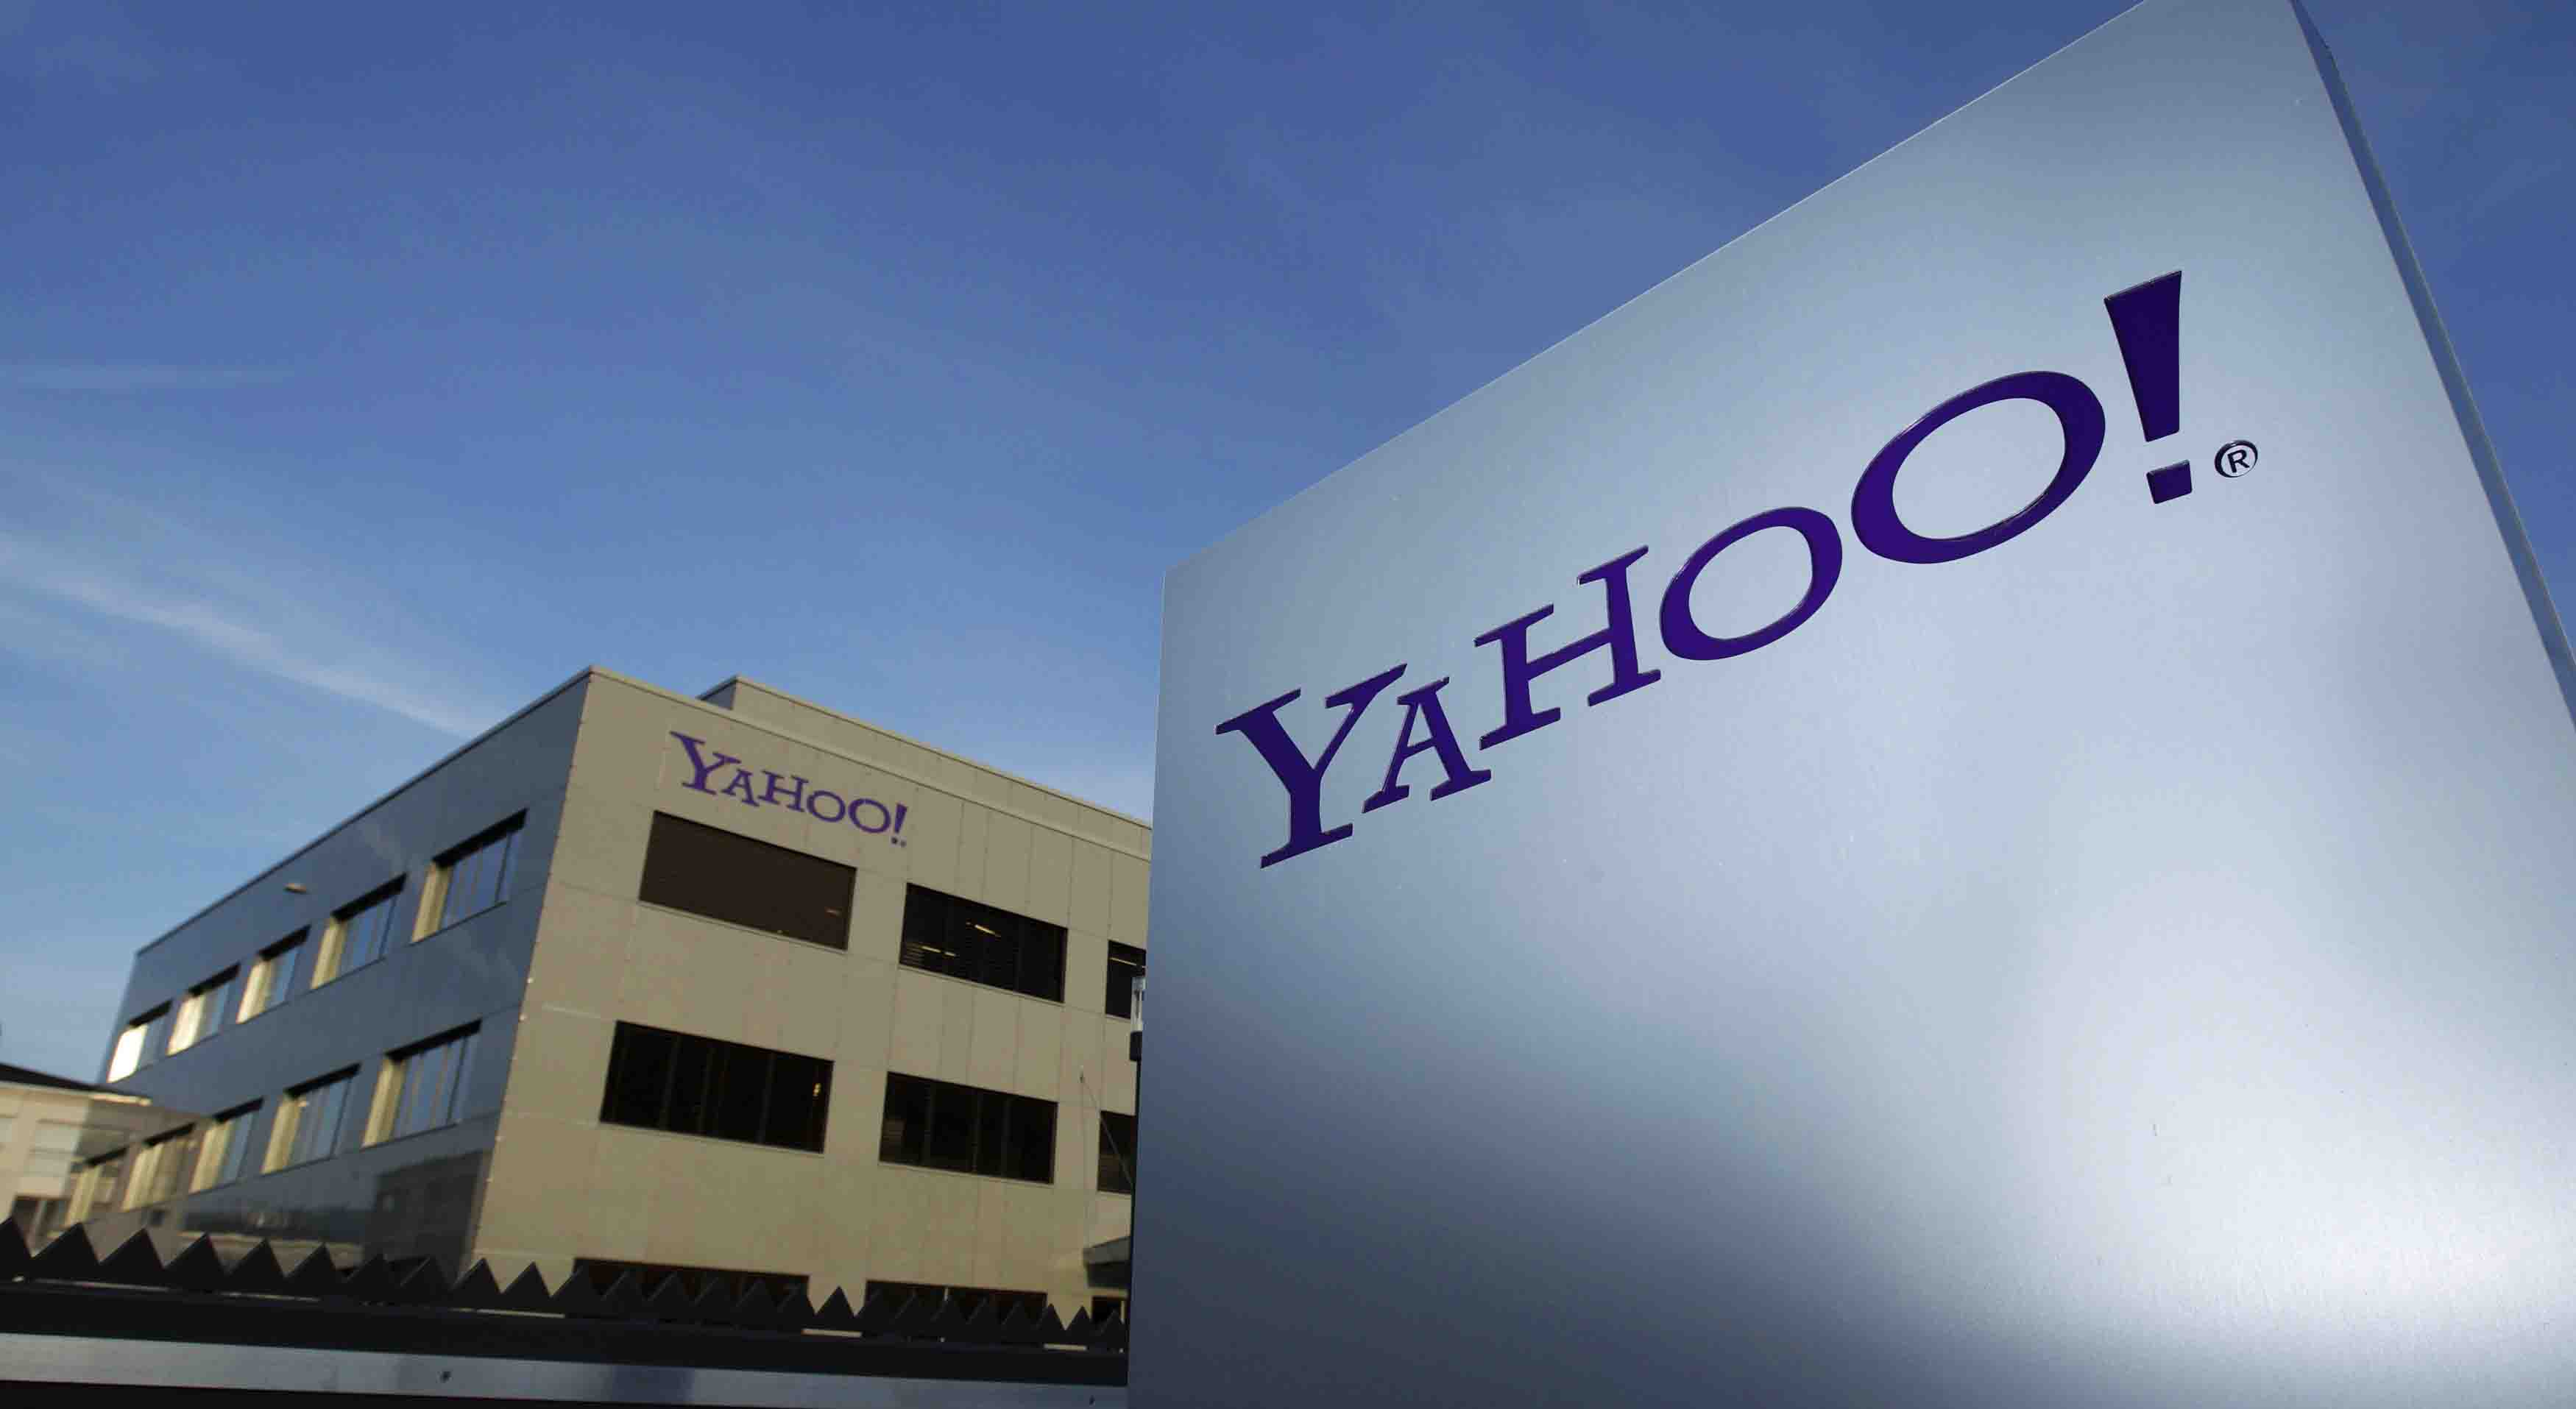 Ingresos de Yahoo superan expectativas